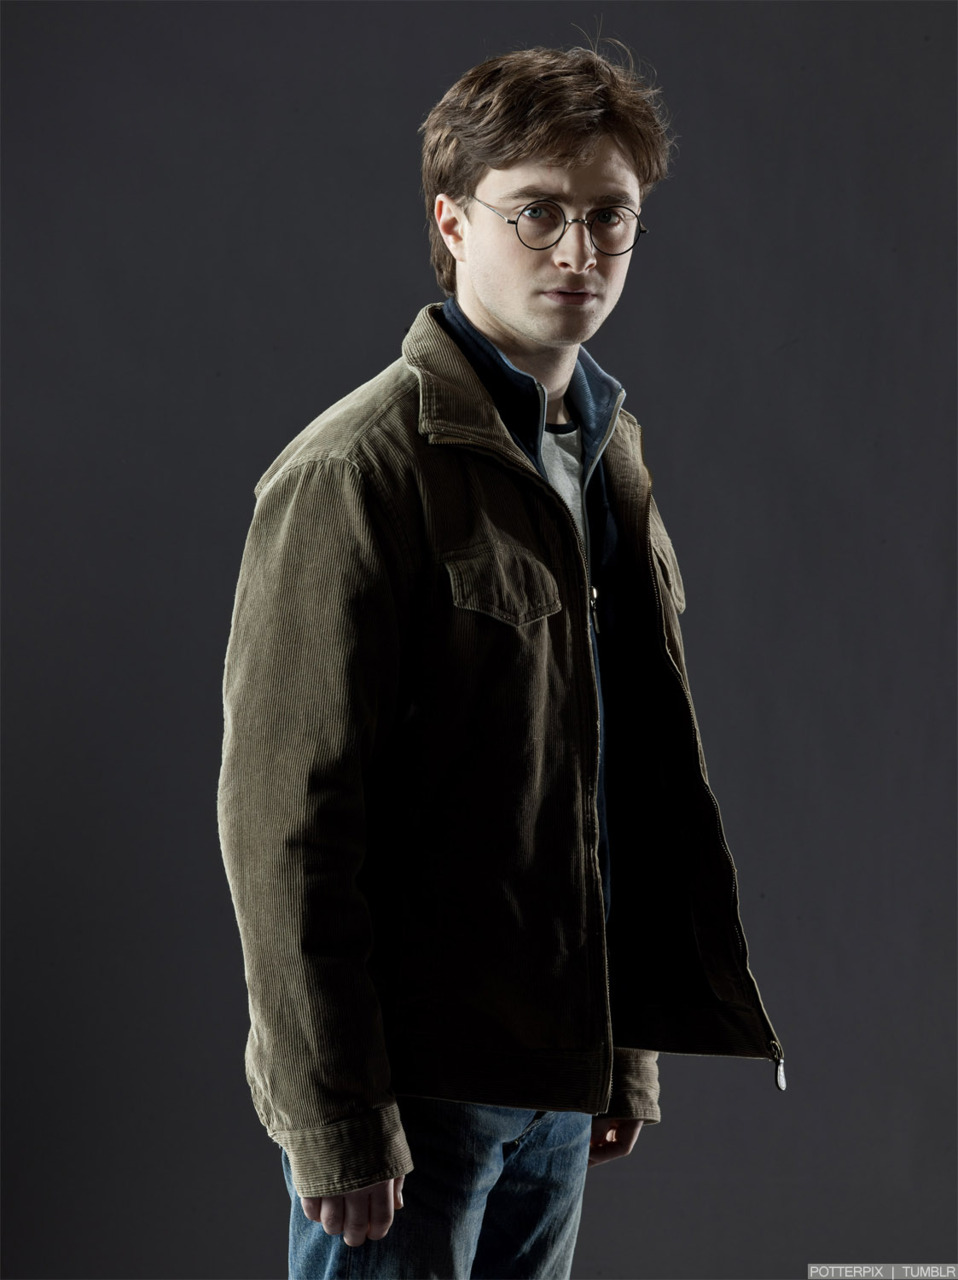 Harry Potter | Heroes Wiki | FANDOM powered by Wikia